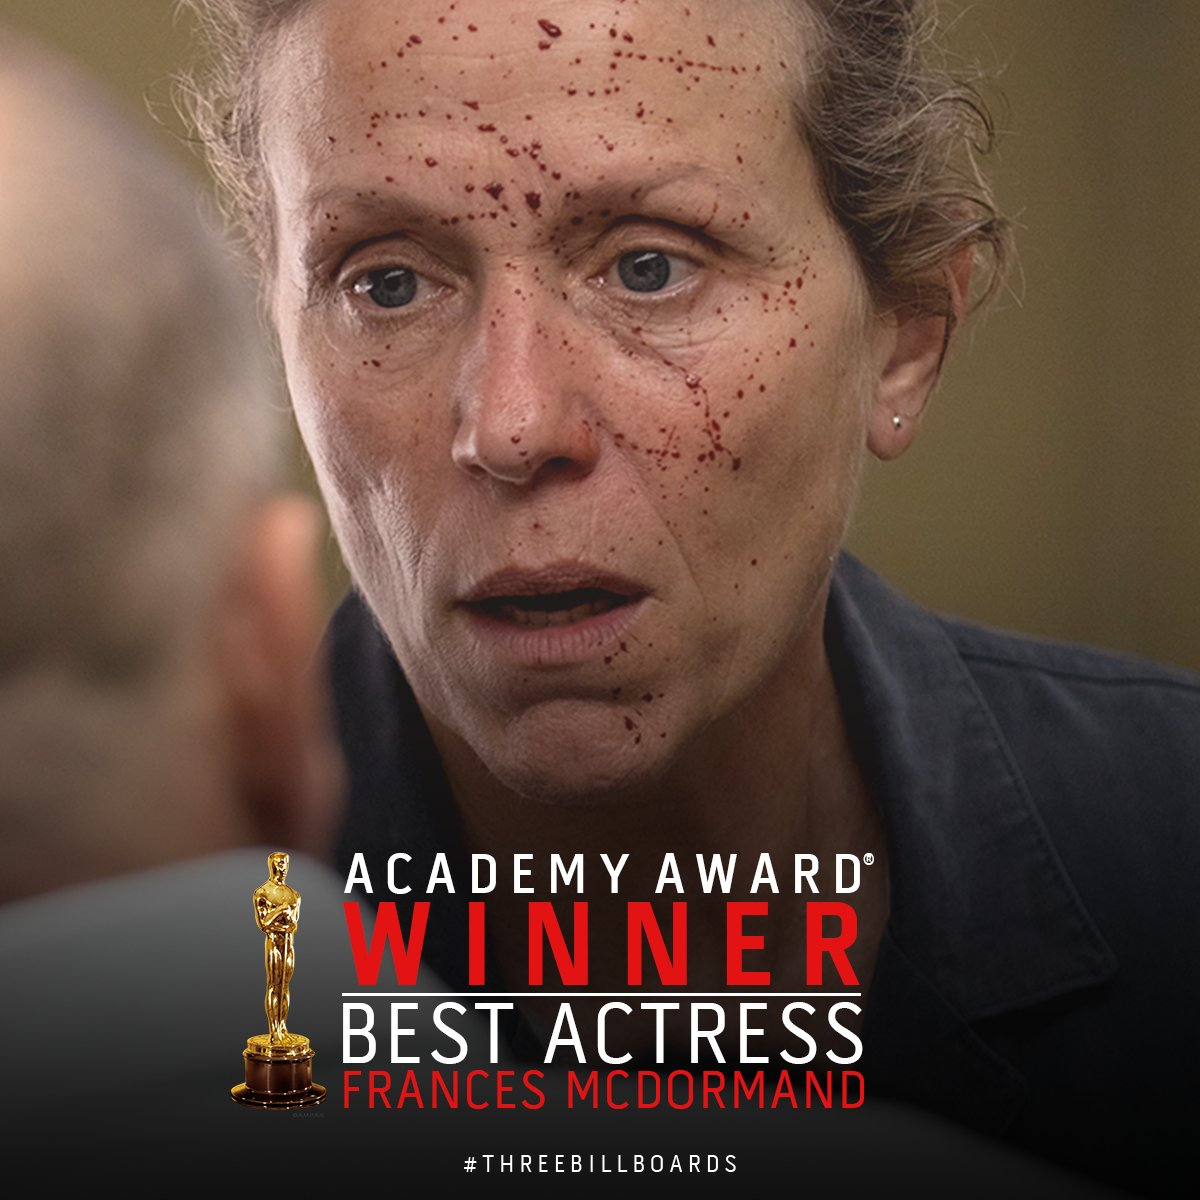 Blueprint pictures blueprintpics twitter look around ladies and gentlemen because we all have stories to share theacademy award winner for best actress frances mcdormand malvernweather